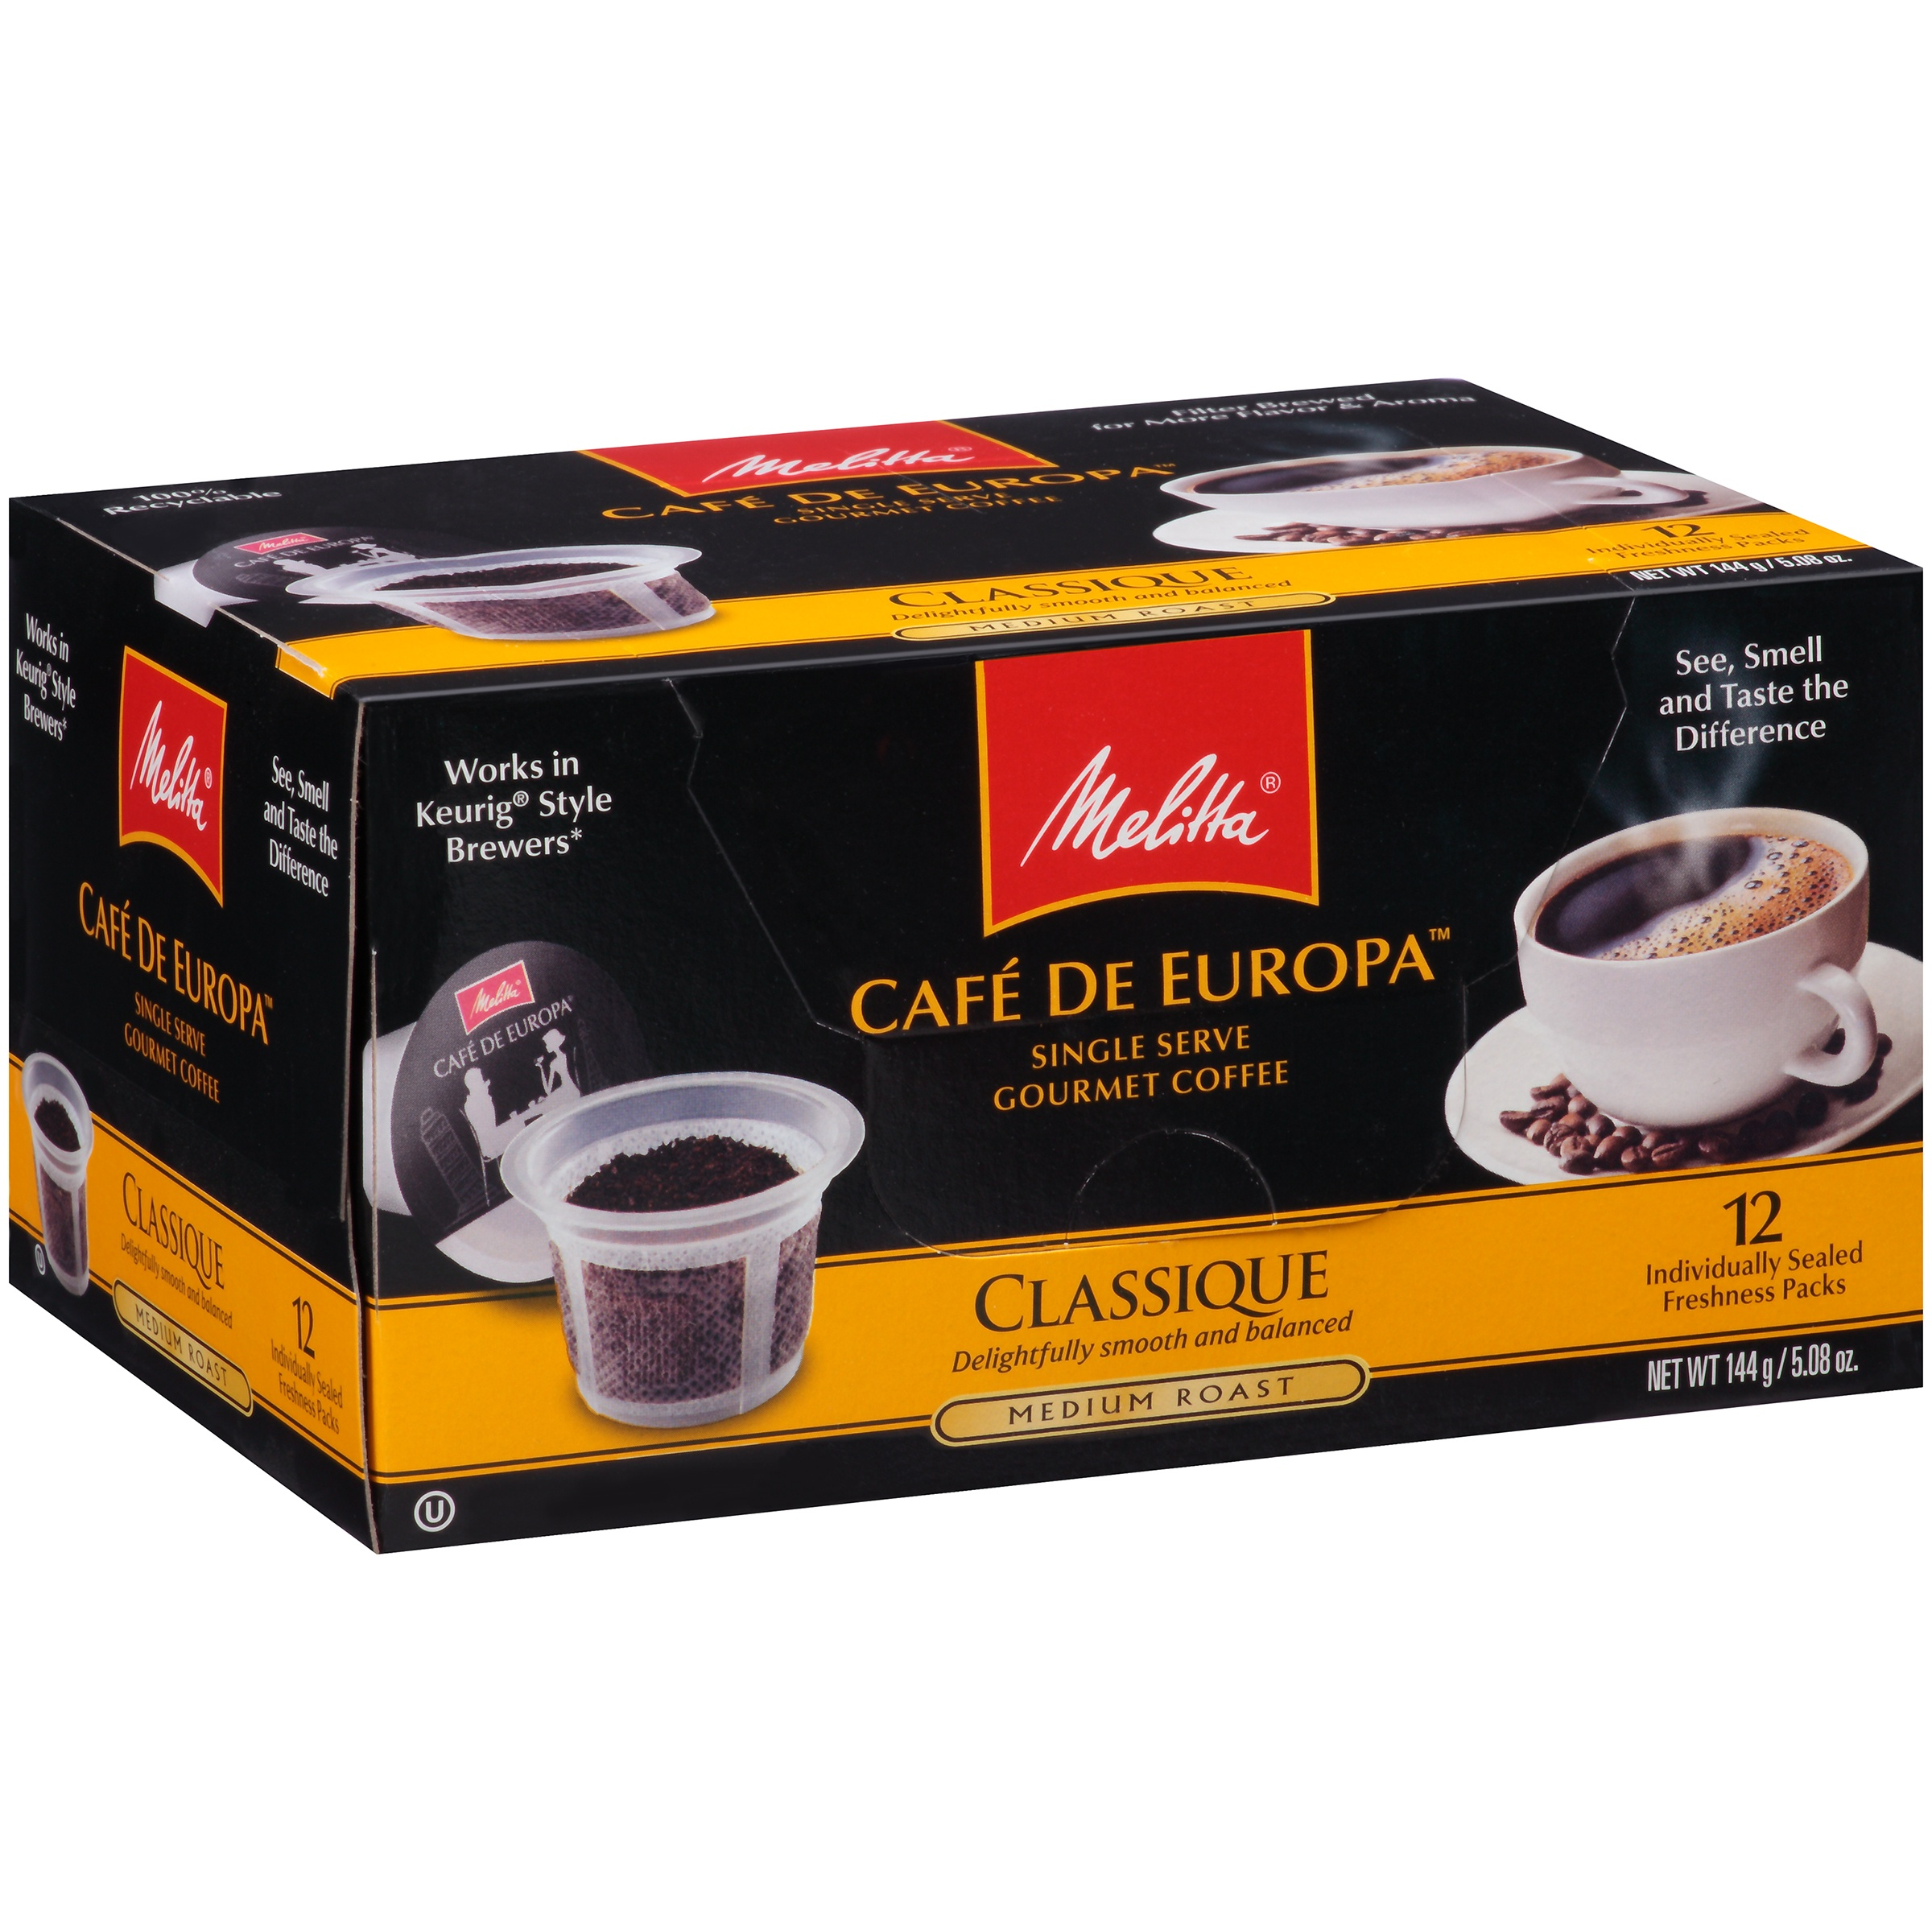 Melitta Cafe de Europa Classique Medium Roast Single Serve Gourmet Coffee 12 ct Box by Melitta USA Inc.